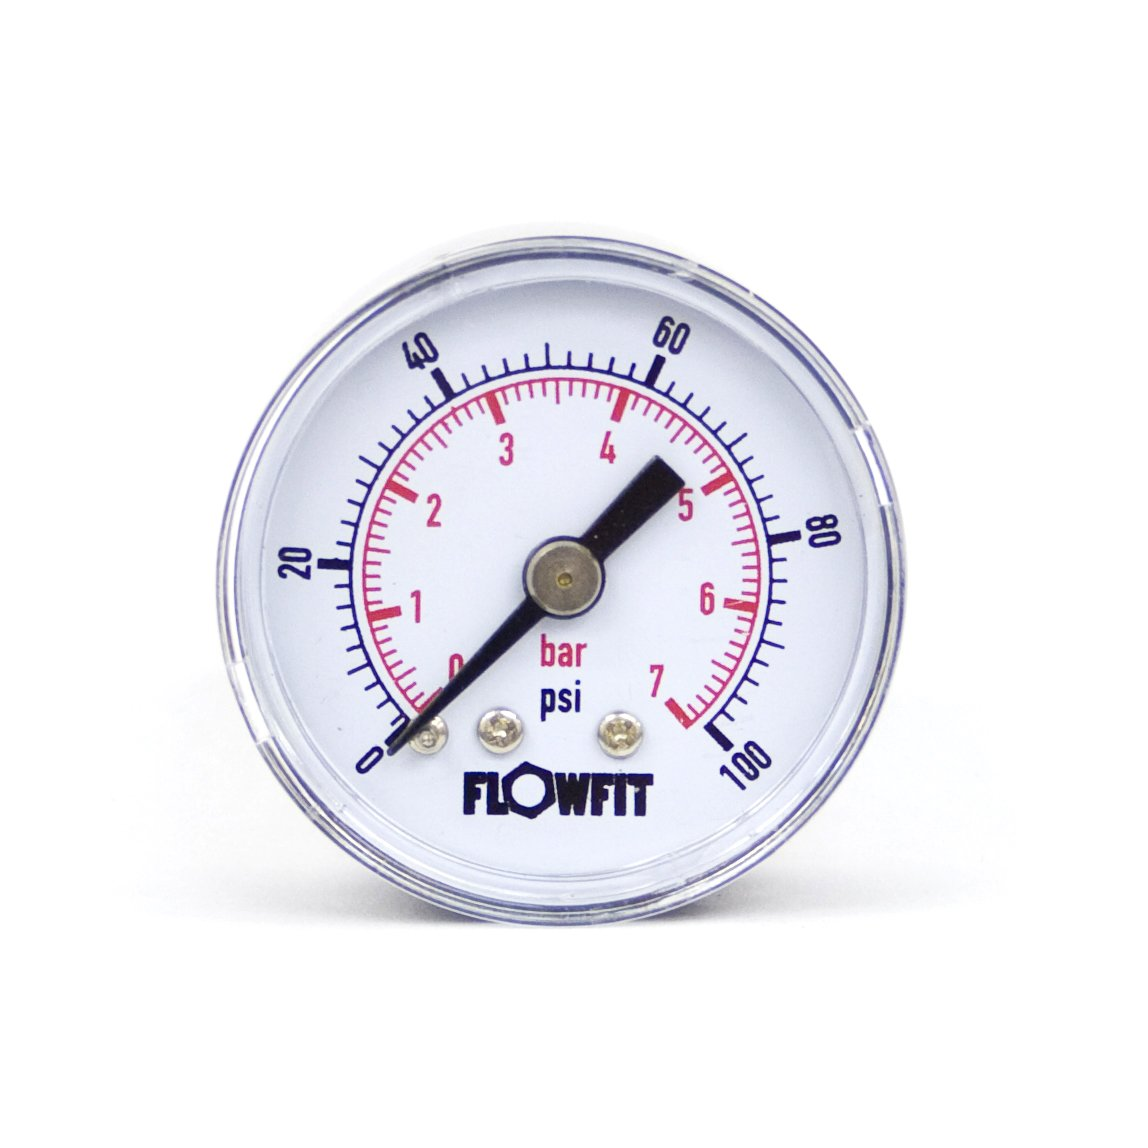 40mm Dry/Pneumatic pressure gauge 0-100 PSI (7 BAR) 1/8' bspt base entry Flowfit